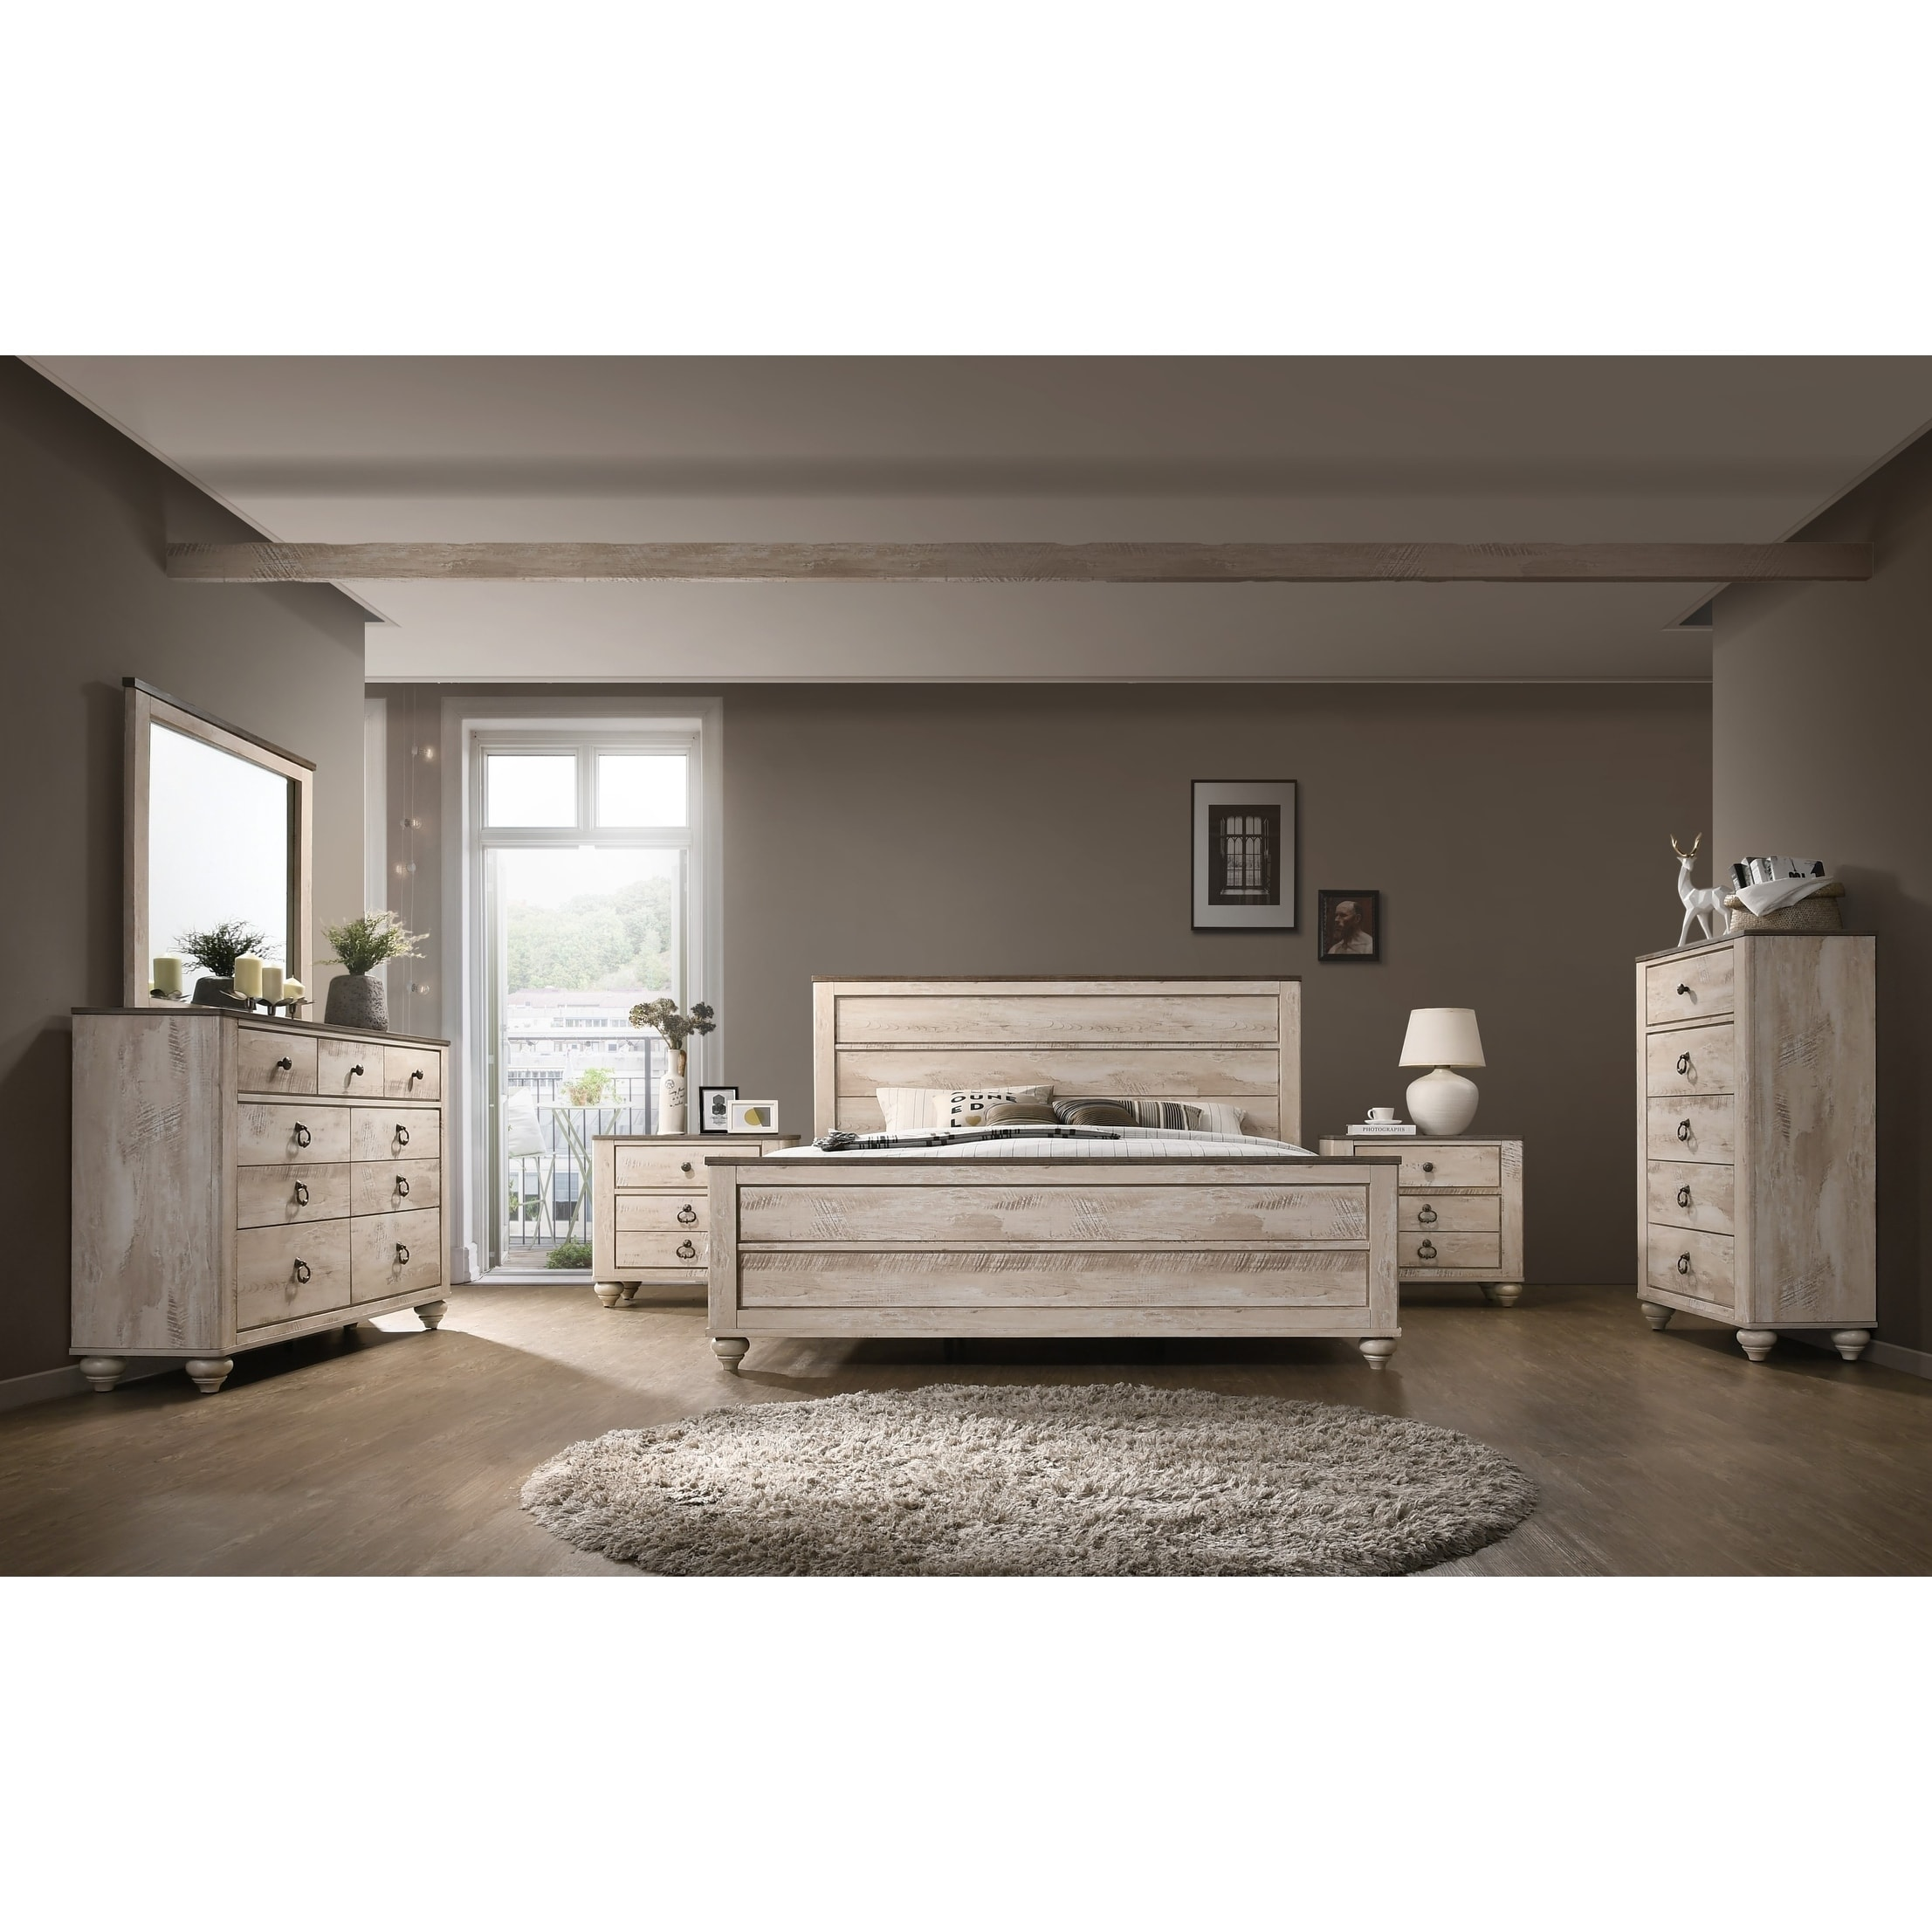 Imerland Contemporary White Wash Finish 6 Piece Bedroom Set Queen On Sale Overstock 19758671